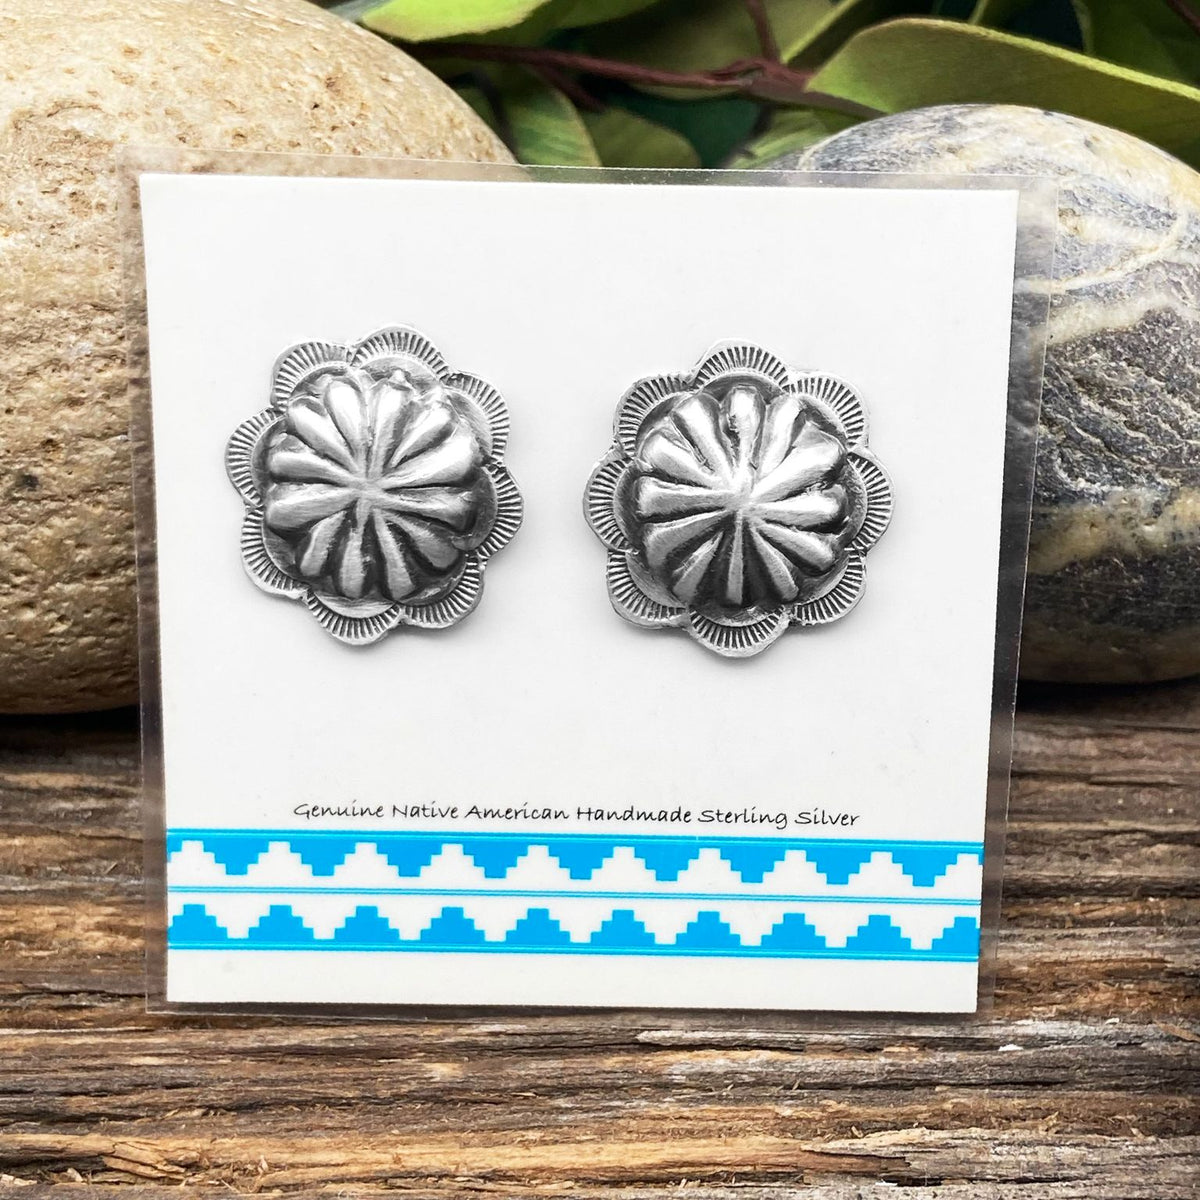 Oxidized Sterling Silver Concho Earrings, Authentic Navajo Native American Handmade in the USA, Nickle Free, Southwest Vintage Style